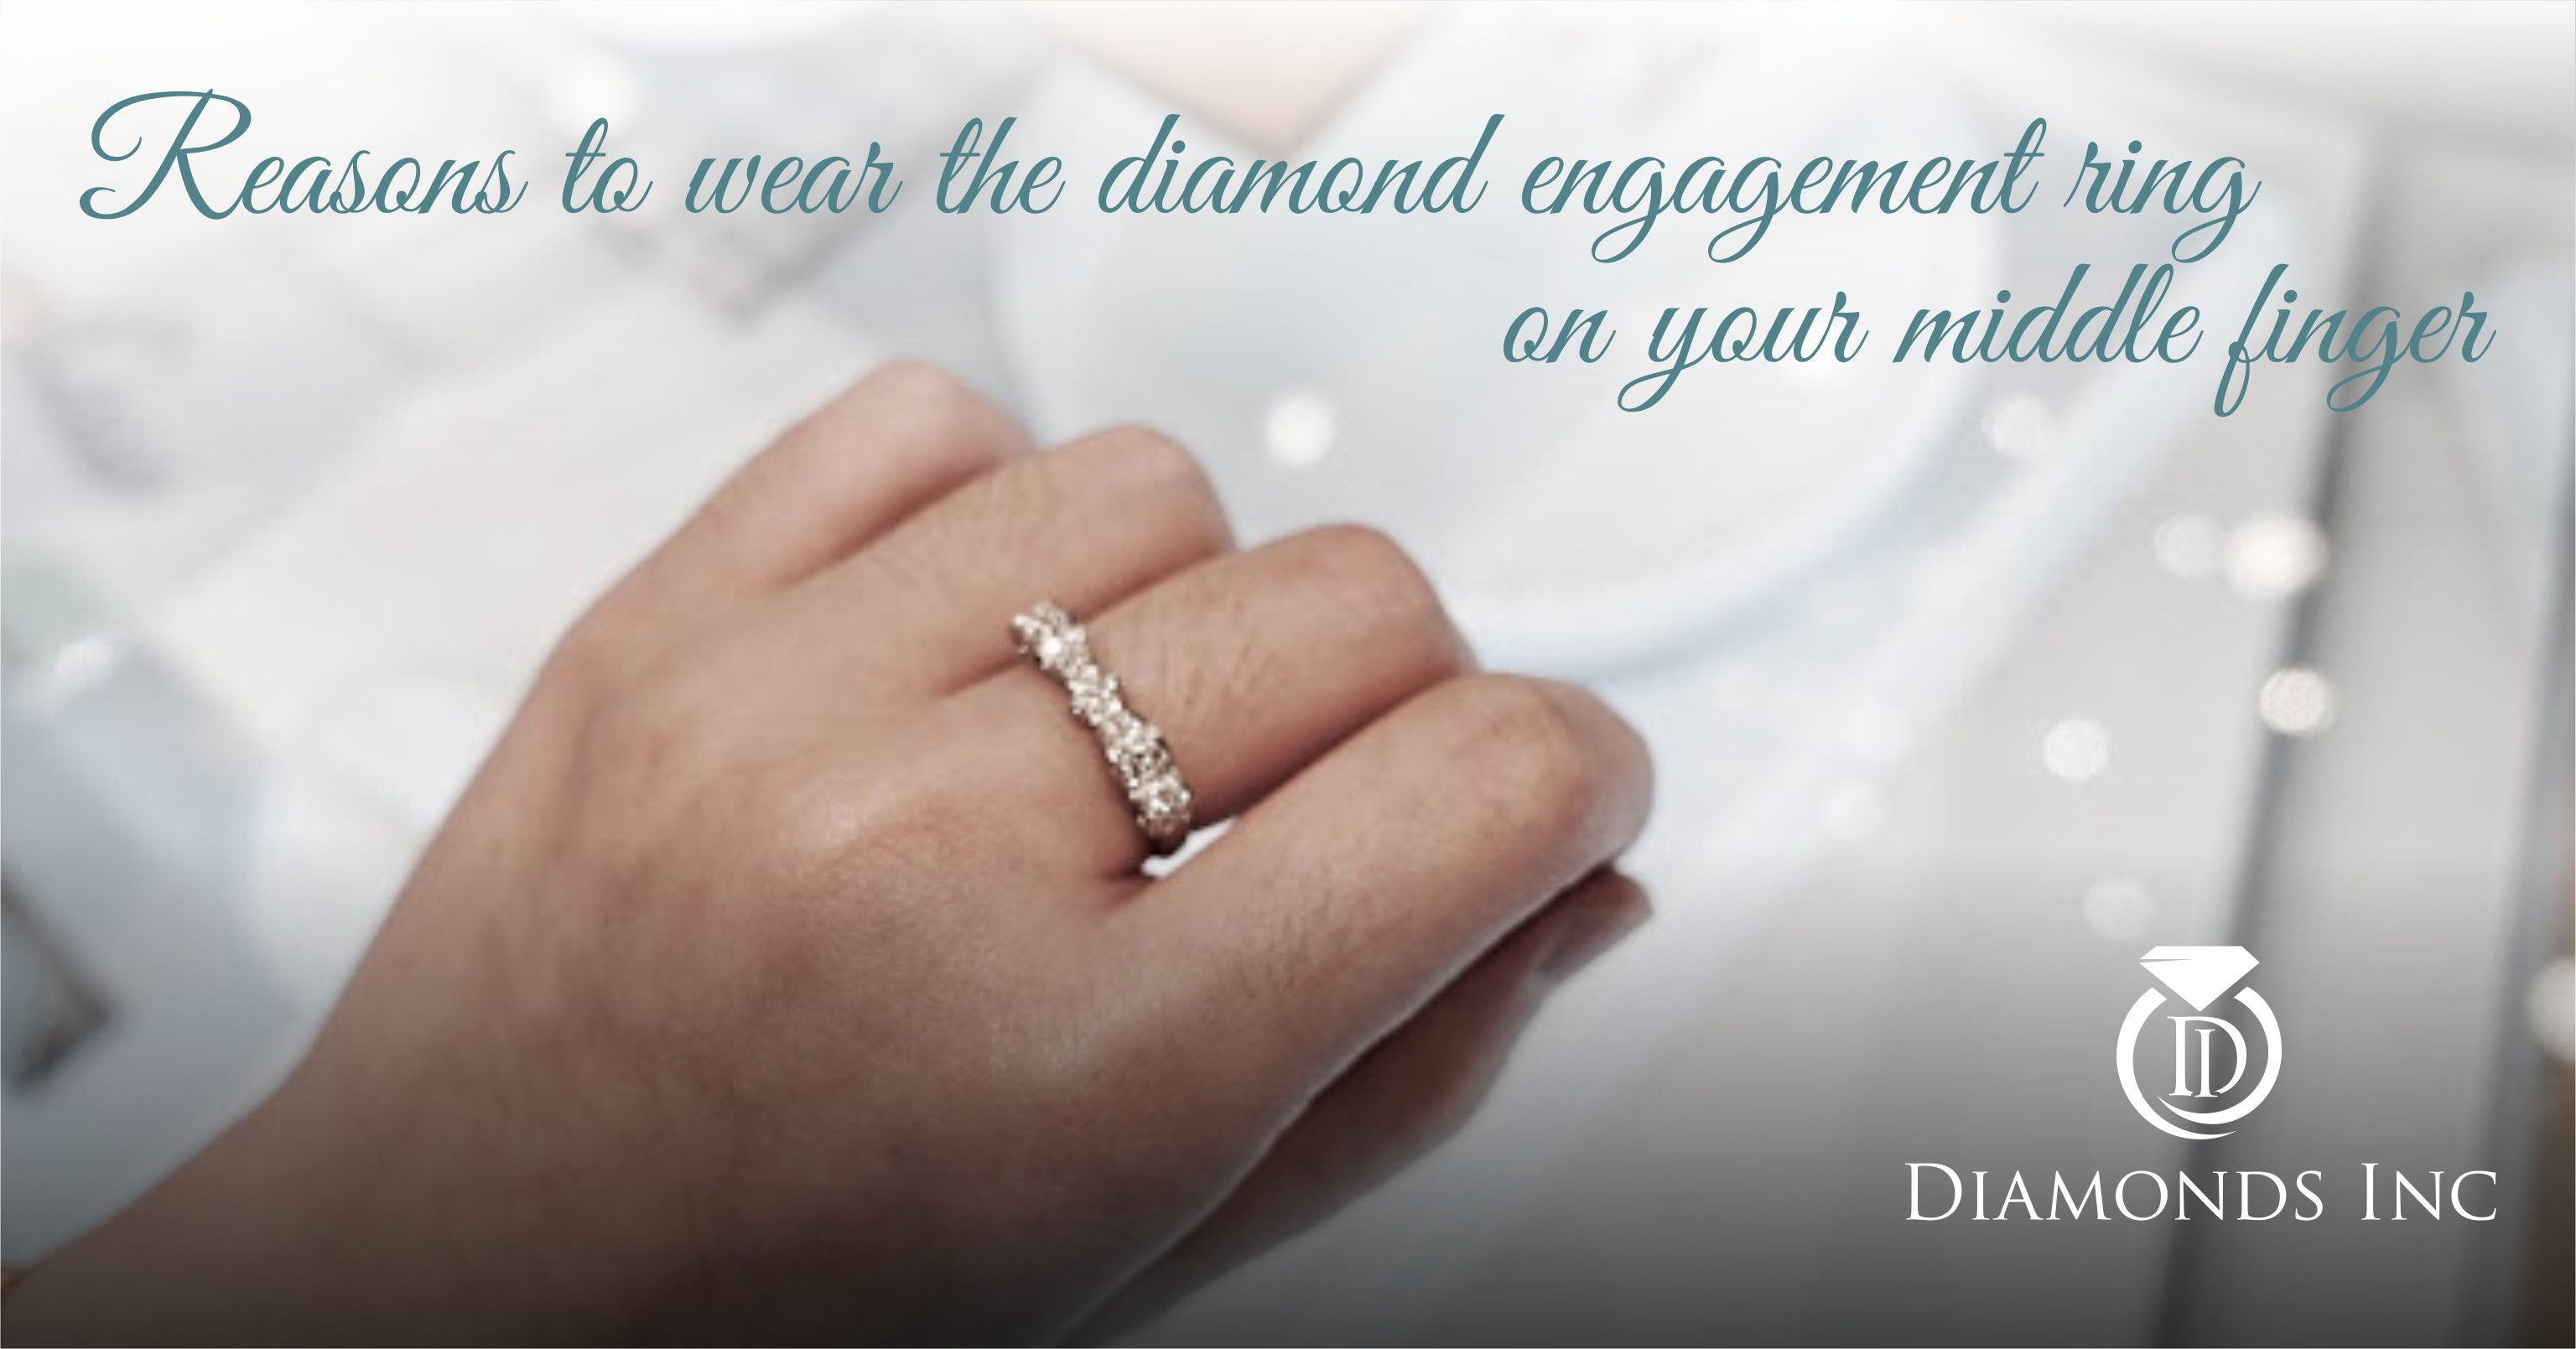 Why you should wear the diamond engagement ring on your middle